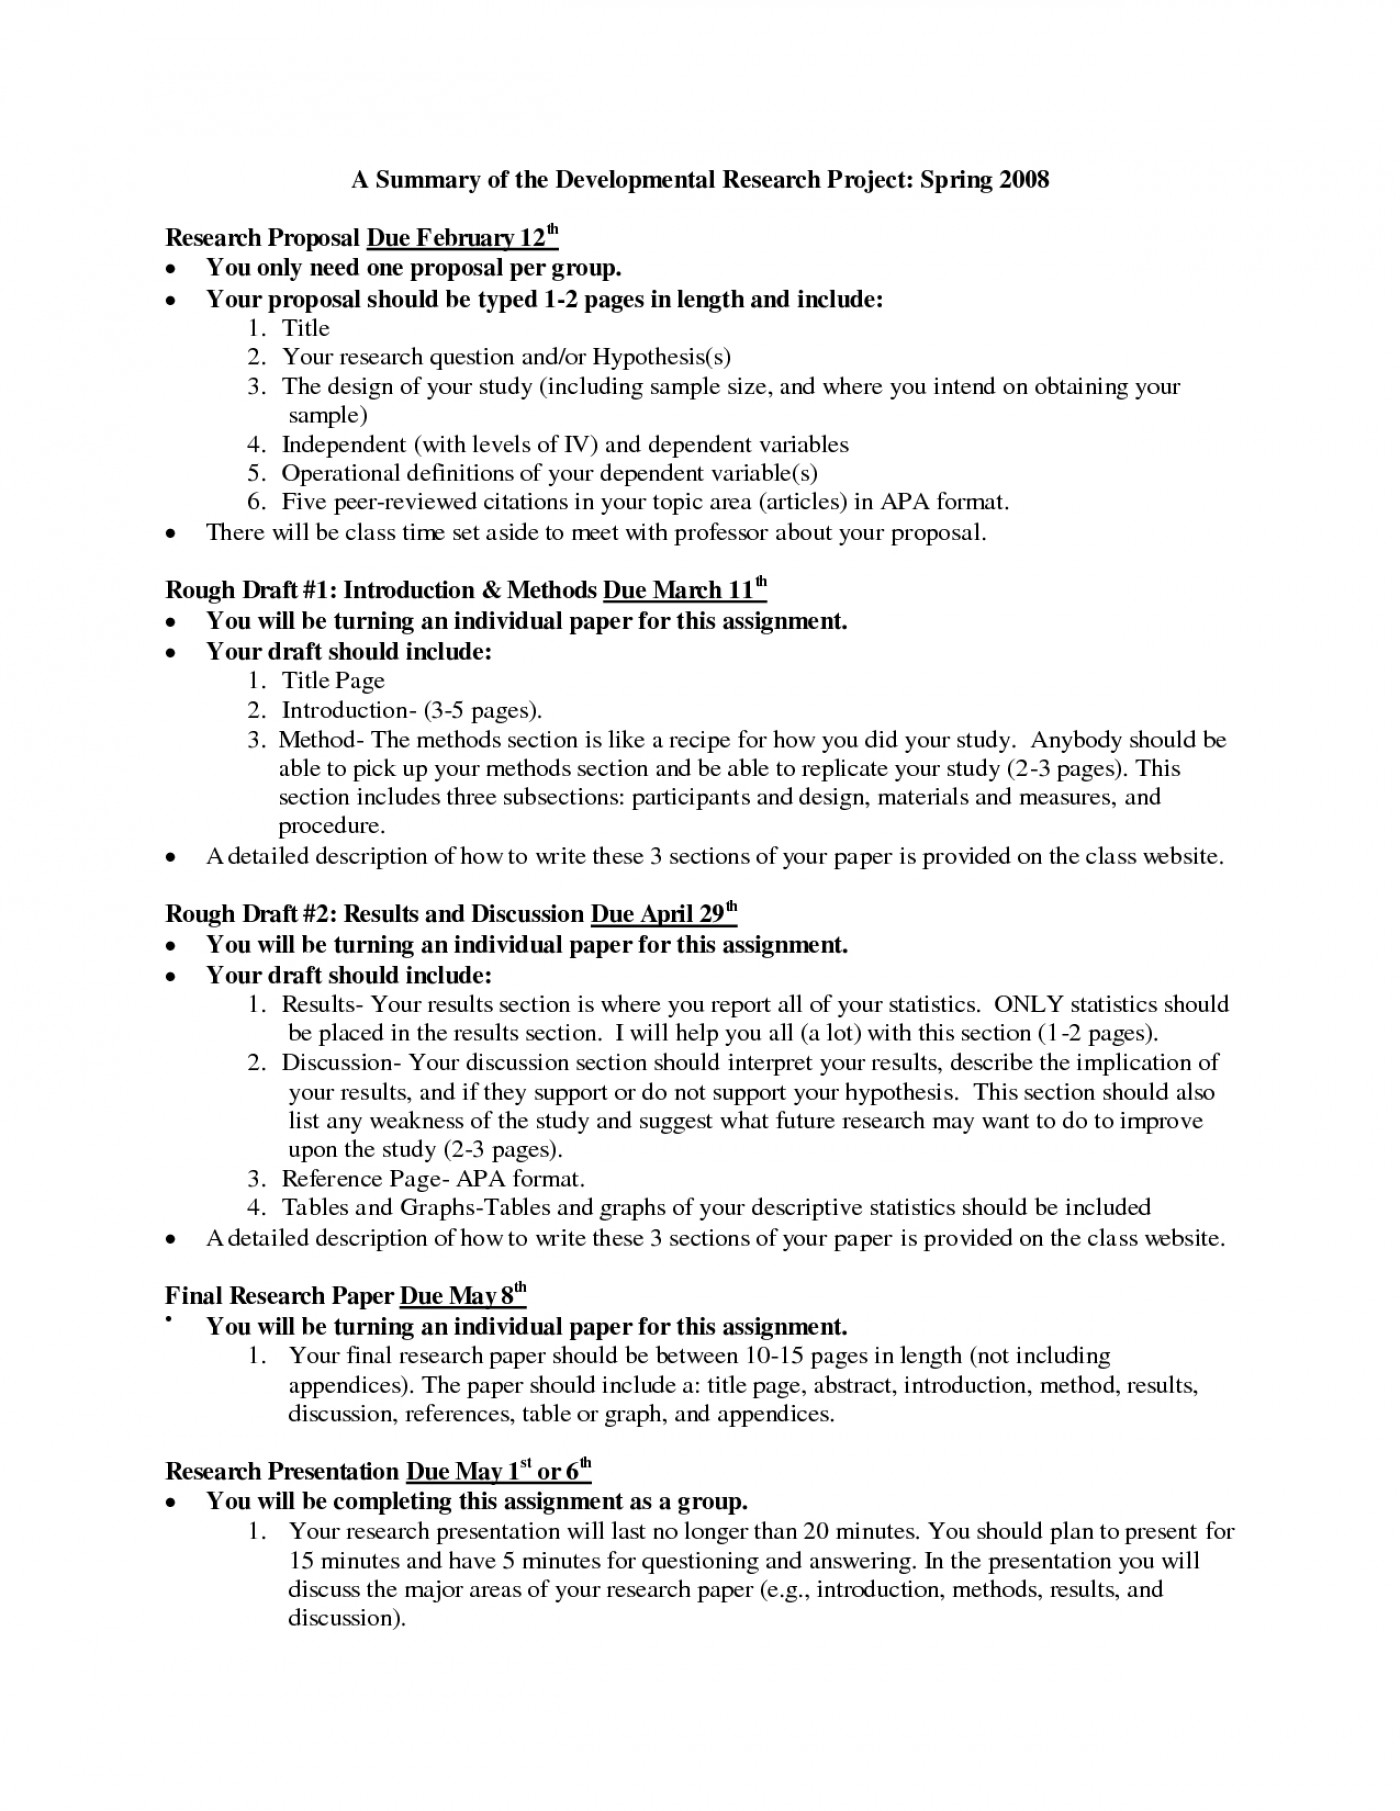 012 Good Research Paper Topic Psychology Undergraduate Resume Unique Sample Singular Topics For High School 2019 Easy Reddit 1400